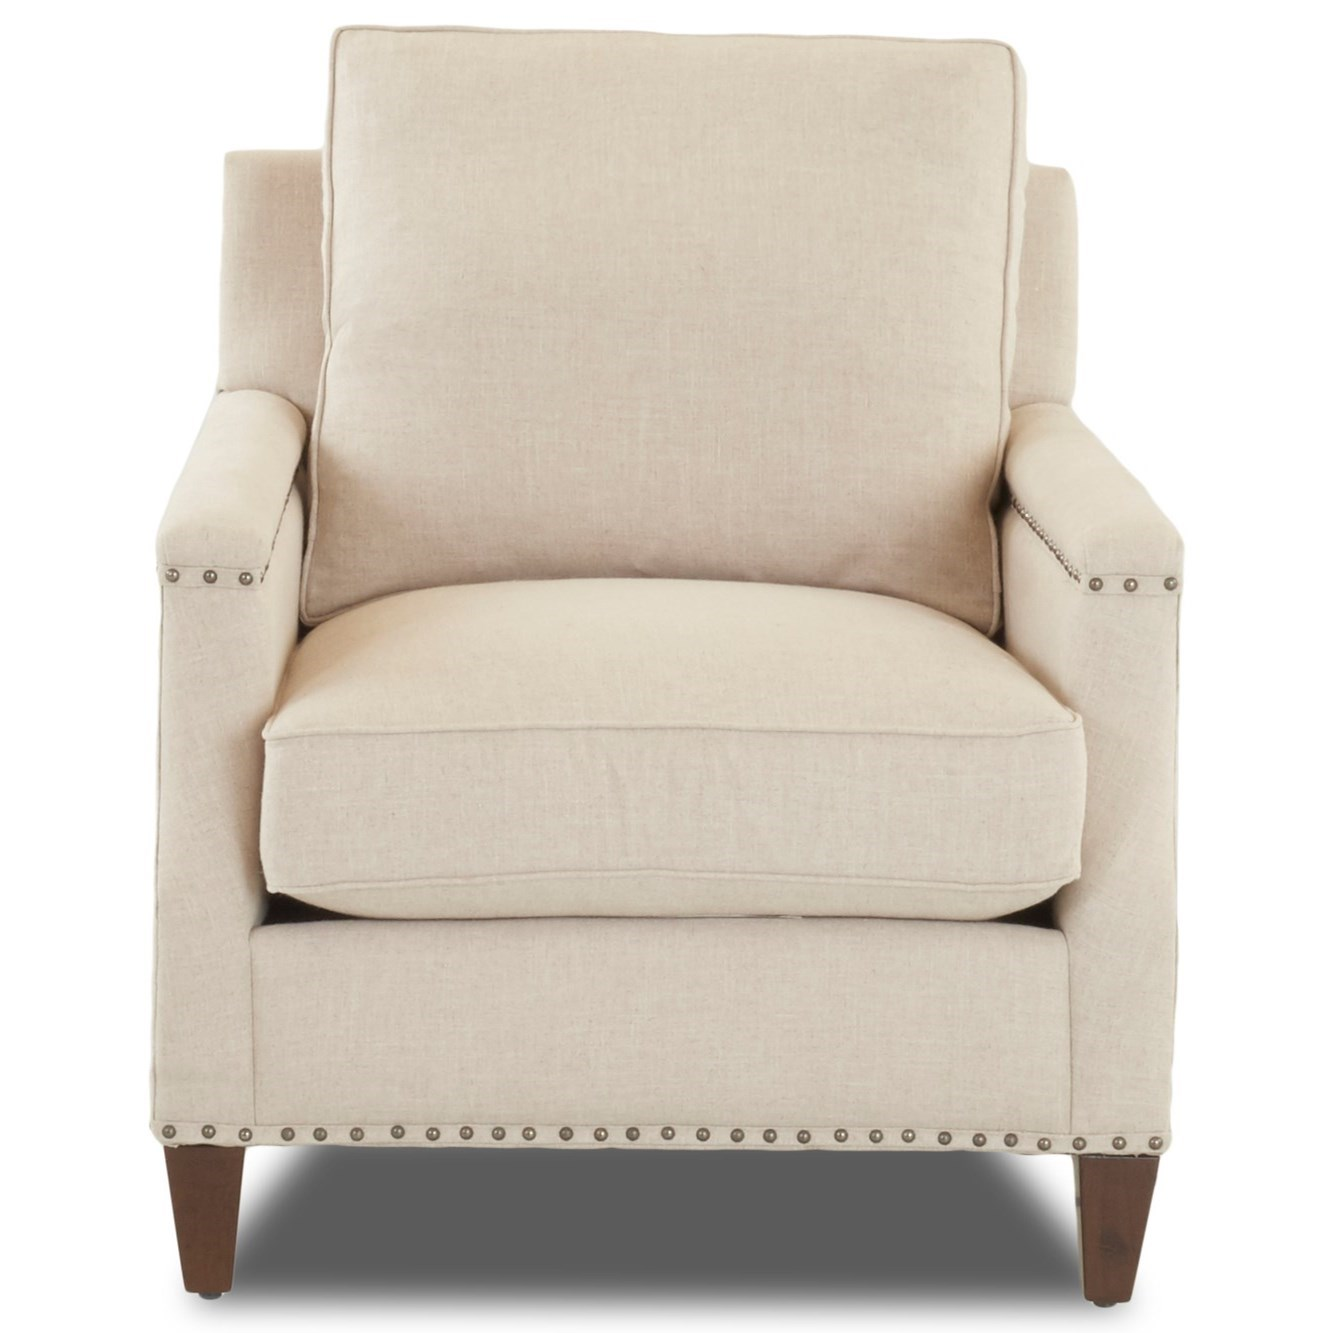 Transitional Chair with Nailhead Studs (No Trim)